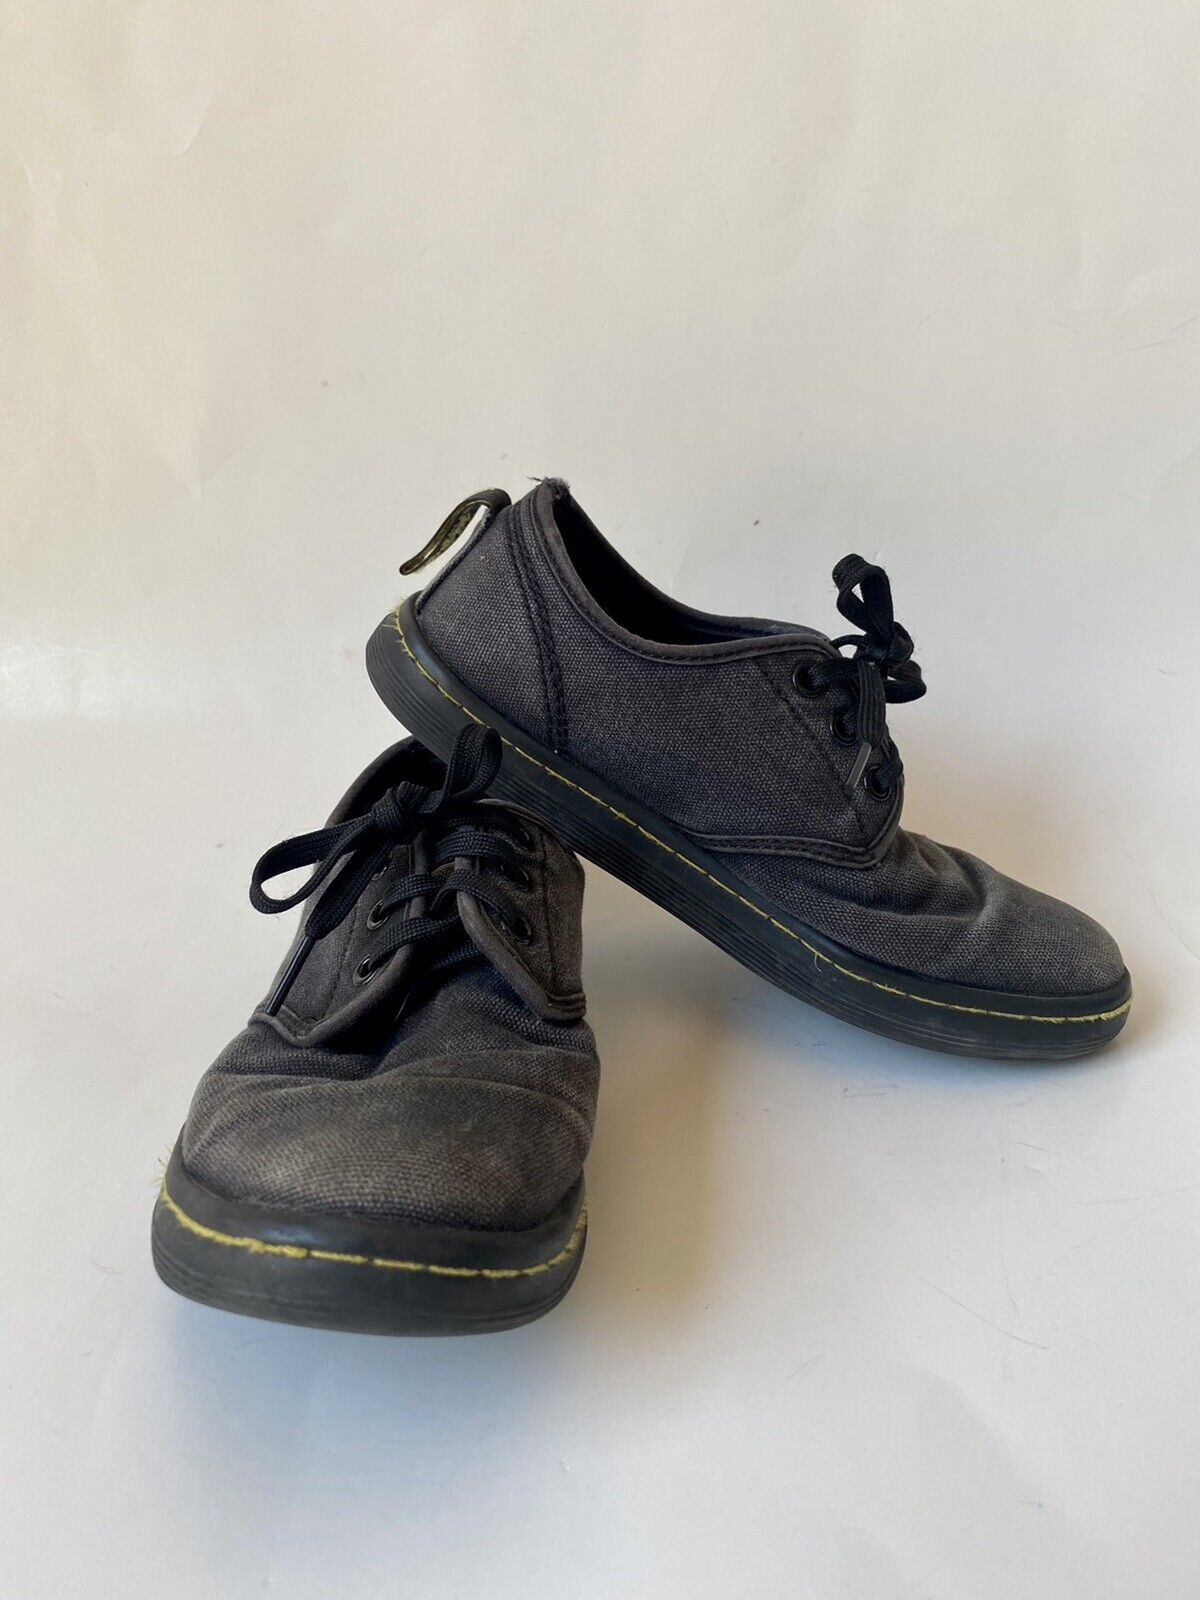 Womens Dr. Martens SoHo Casual Shoes UK 3 US 5 Black Canvas Lace Up Sneaker